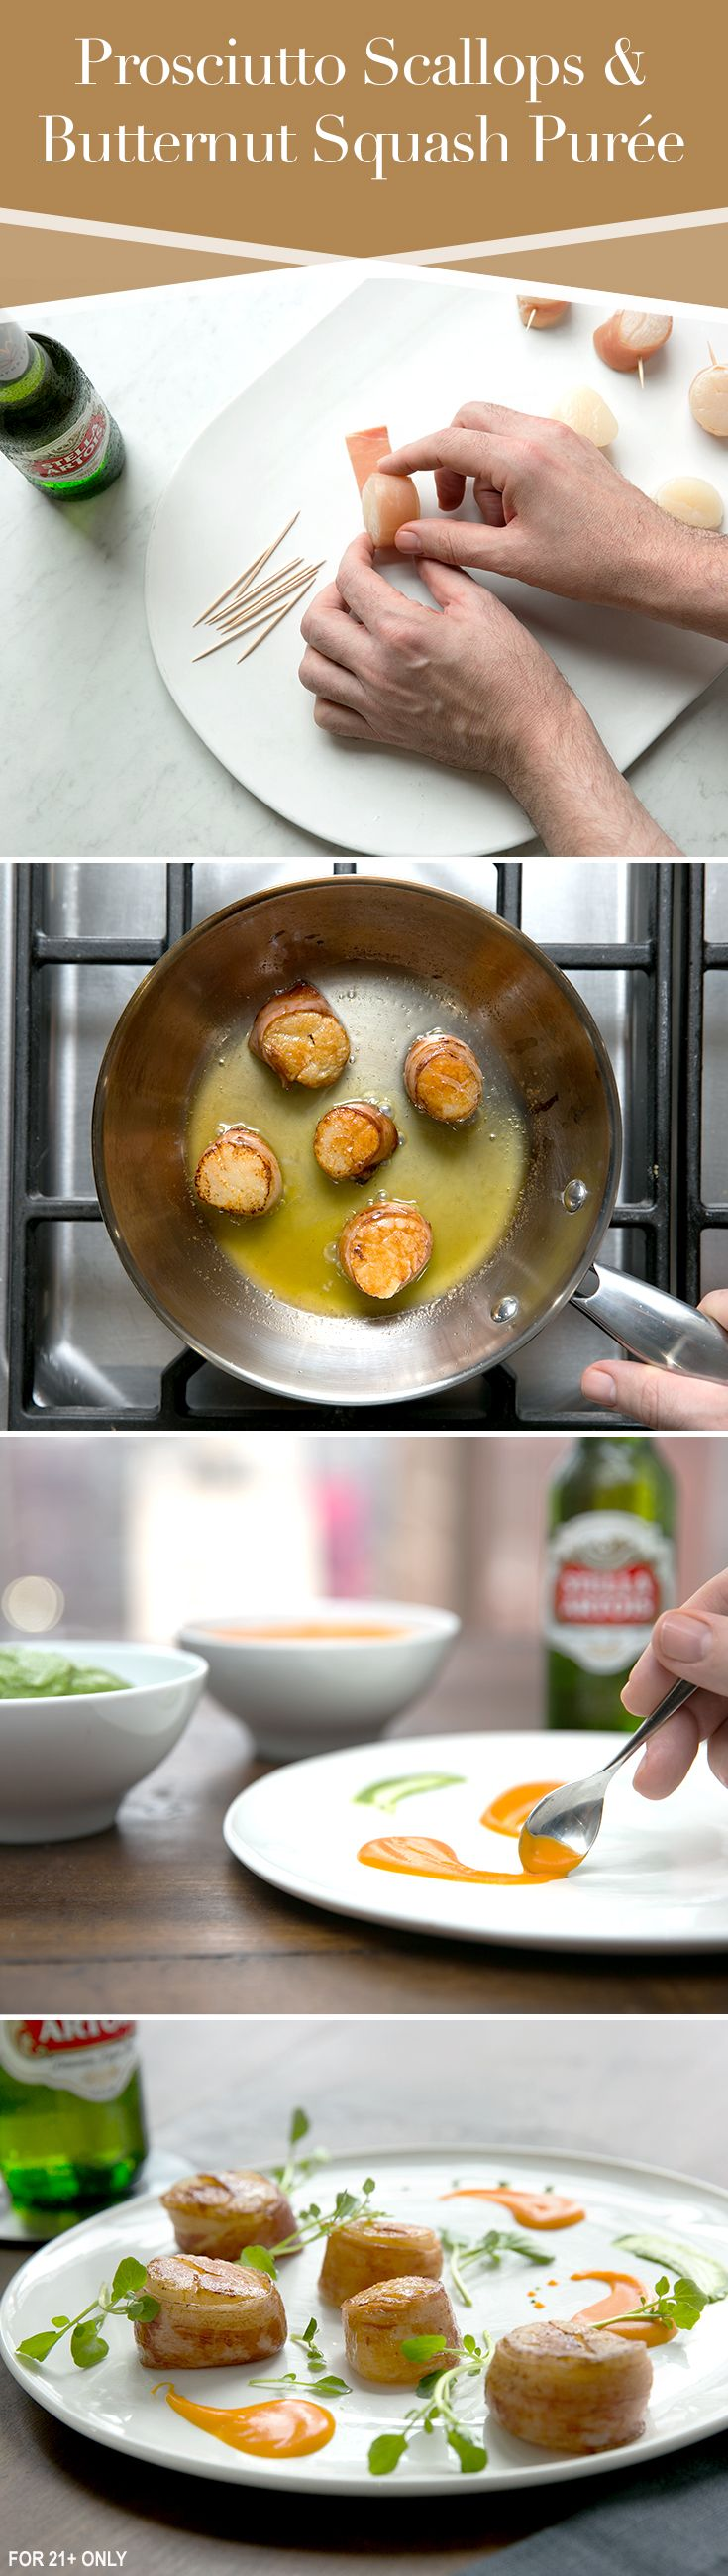 ... Food Recipes on Pinterest | Scallops, Sea bass and Tequila lime shrimp